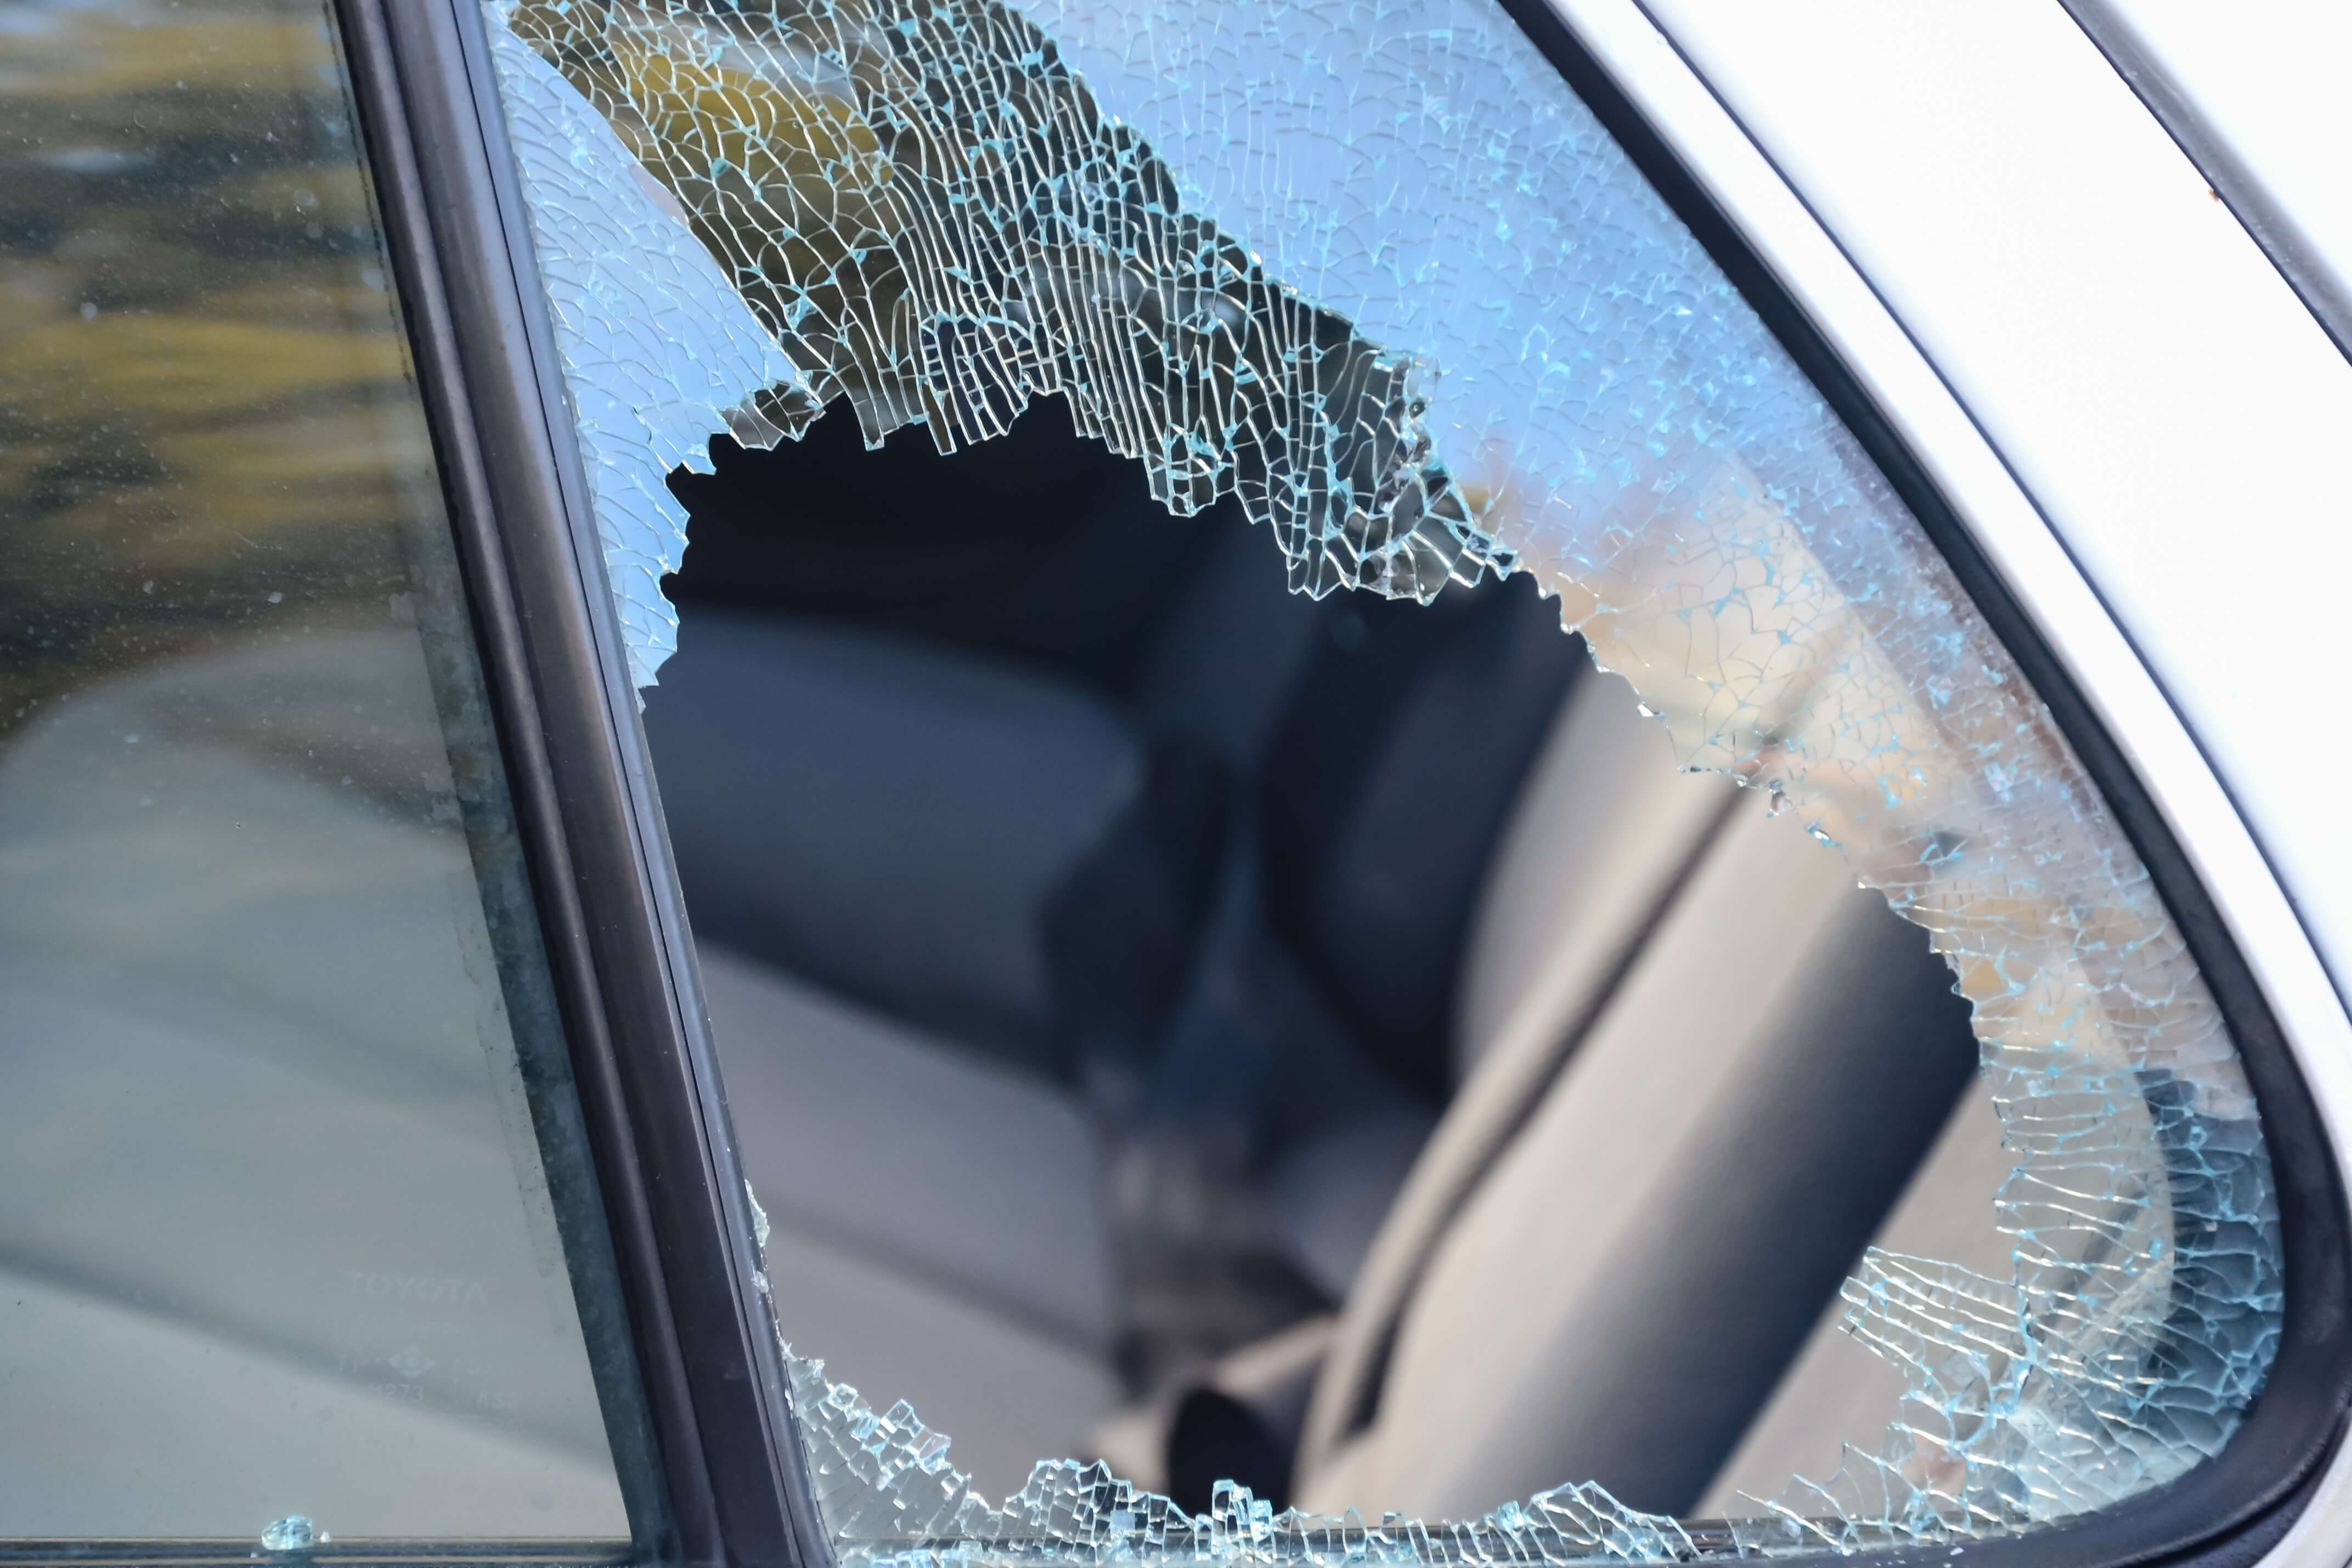 Car Window that was Broken into